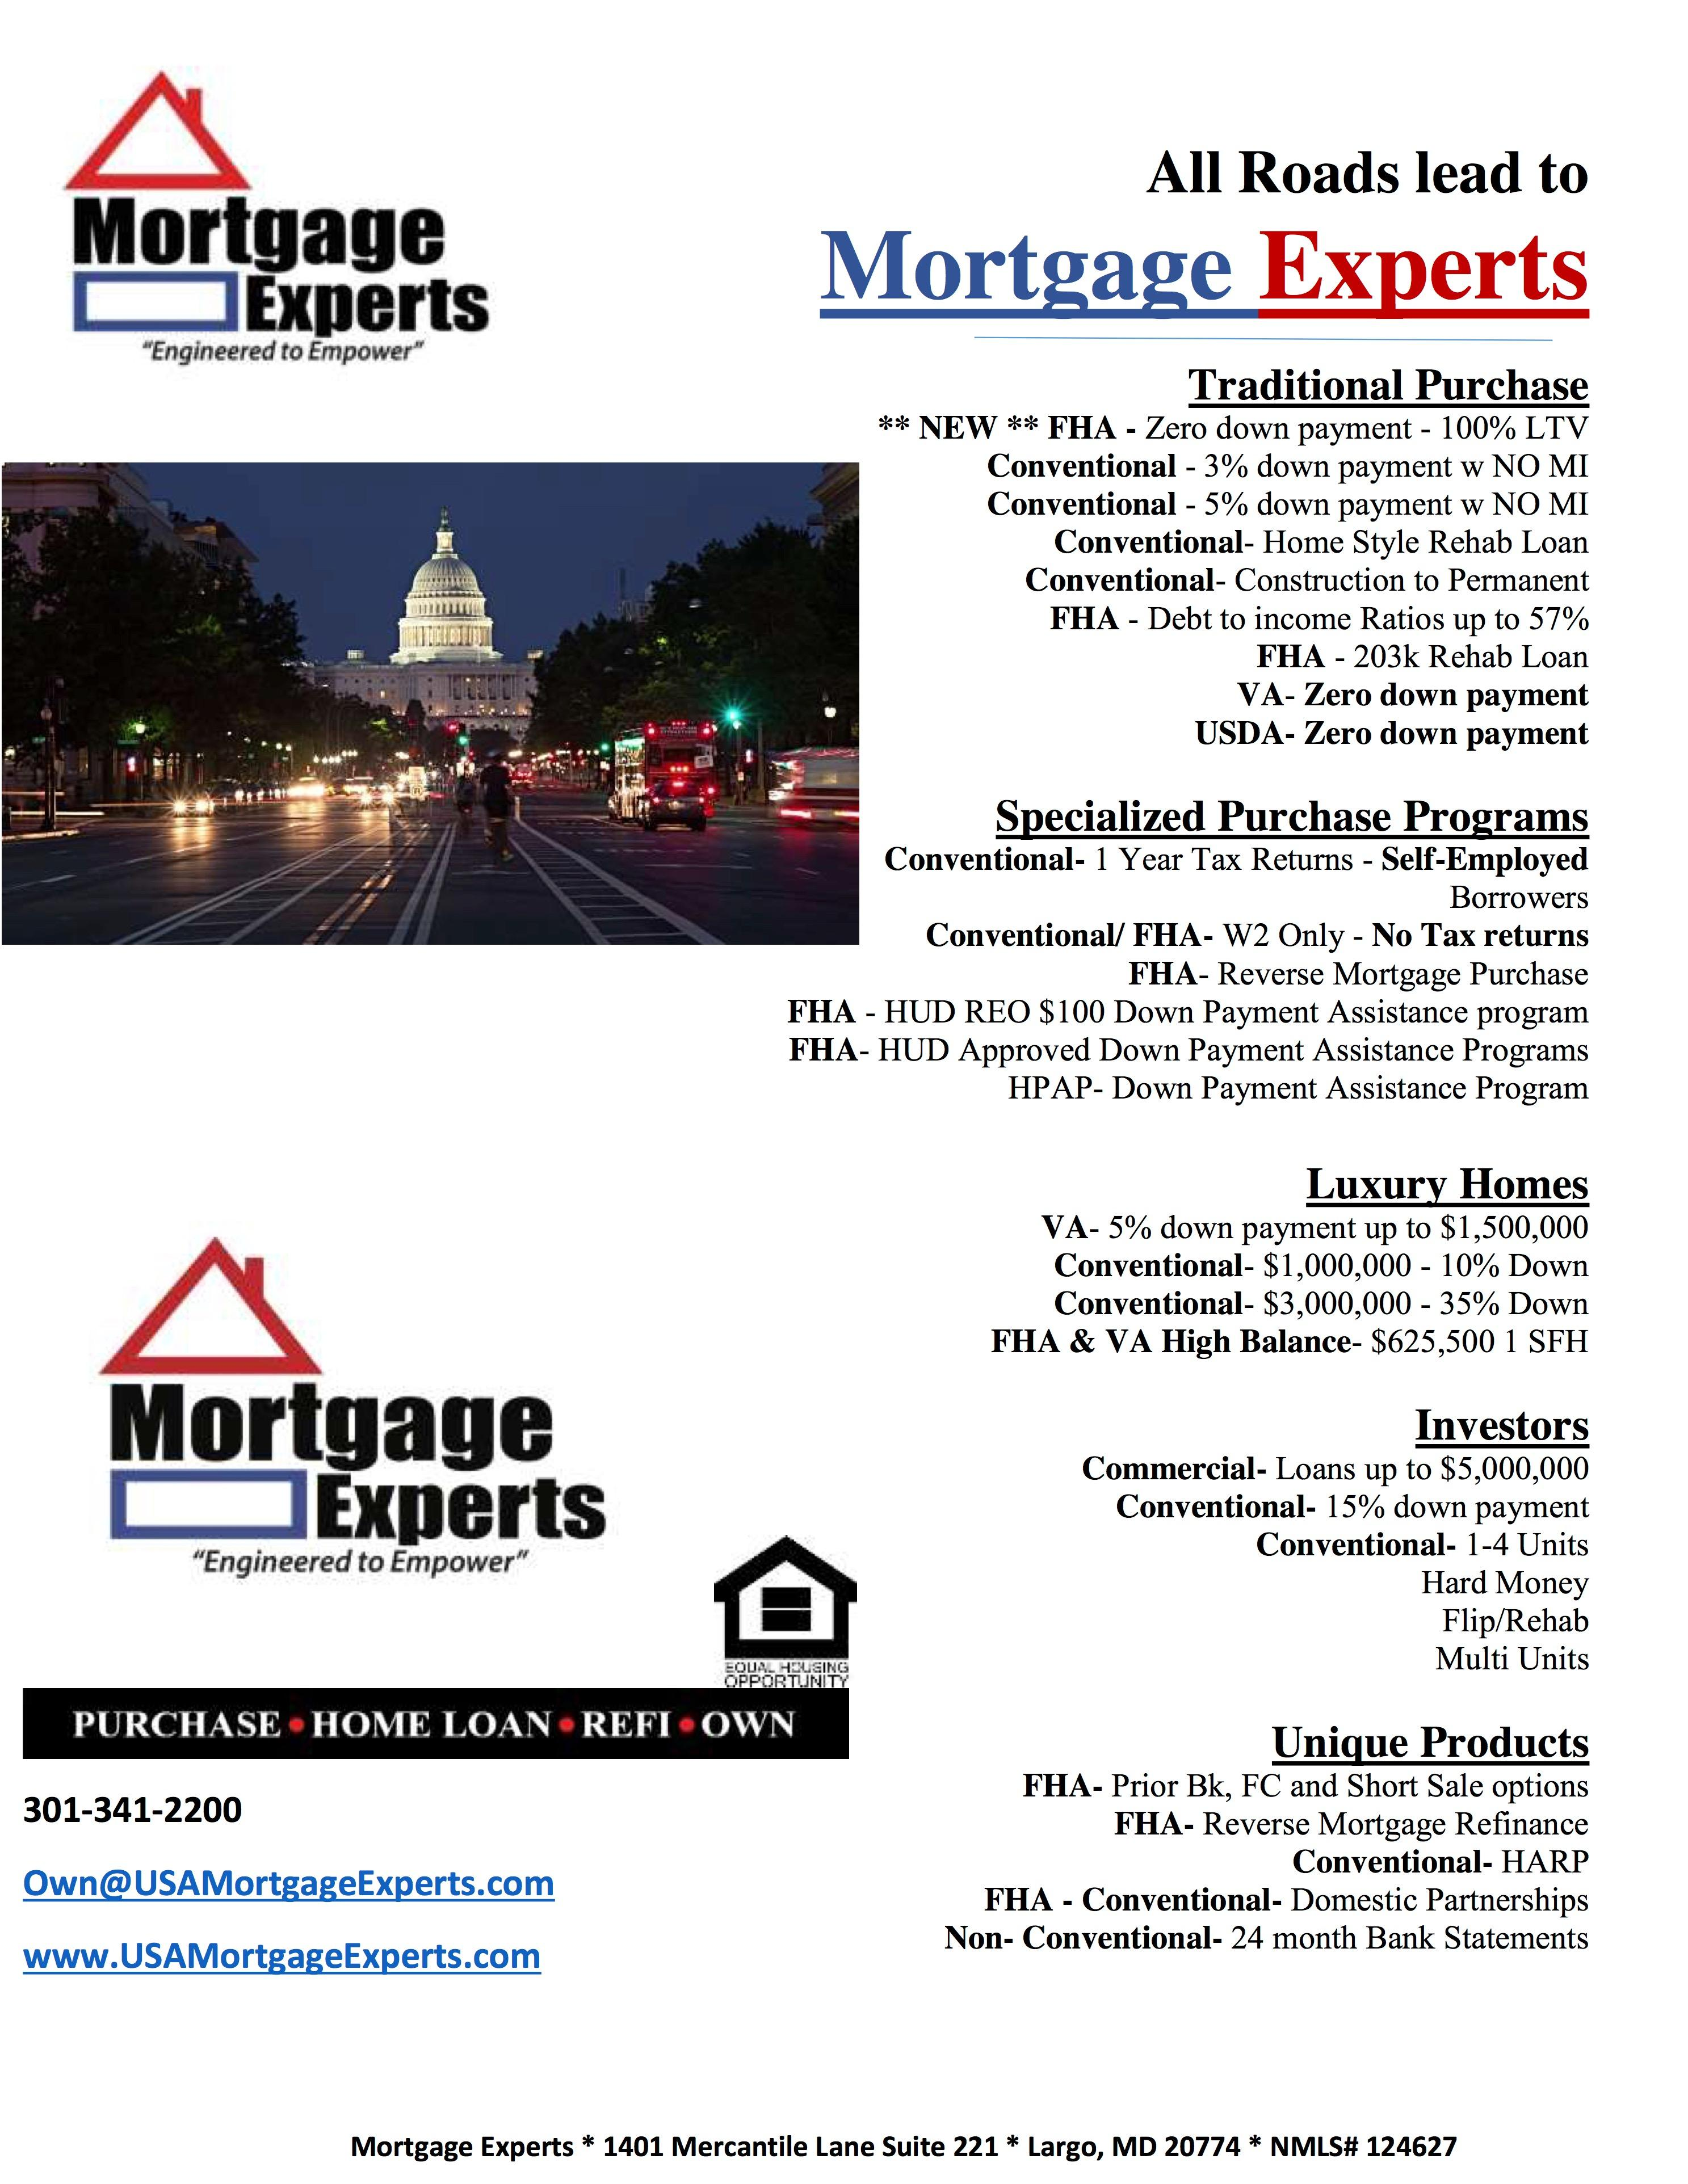 Mortgage Experts image 6